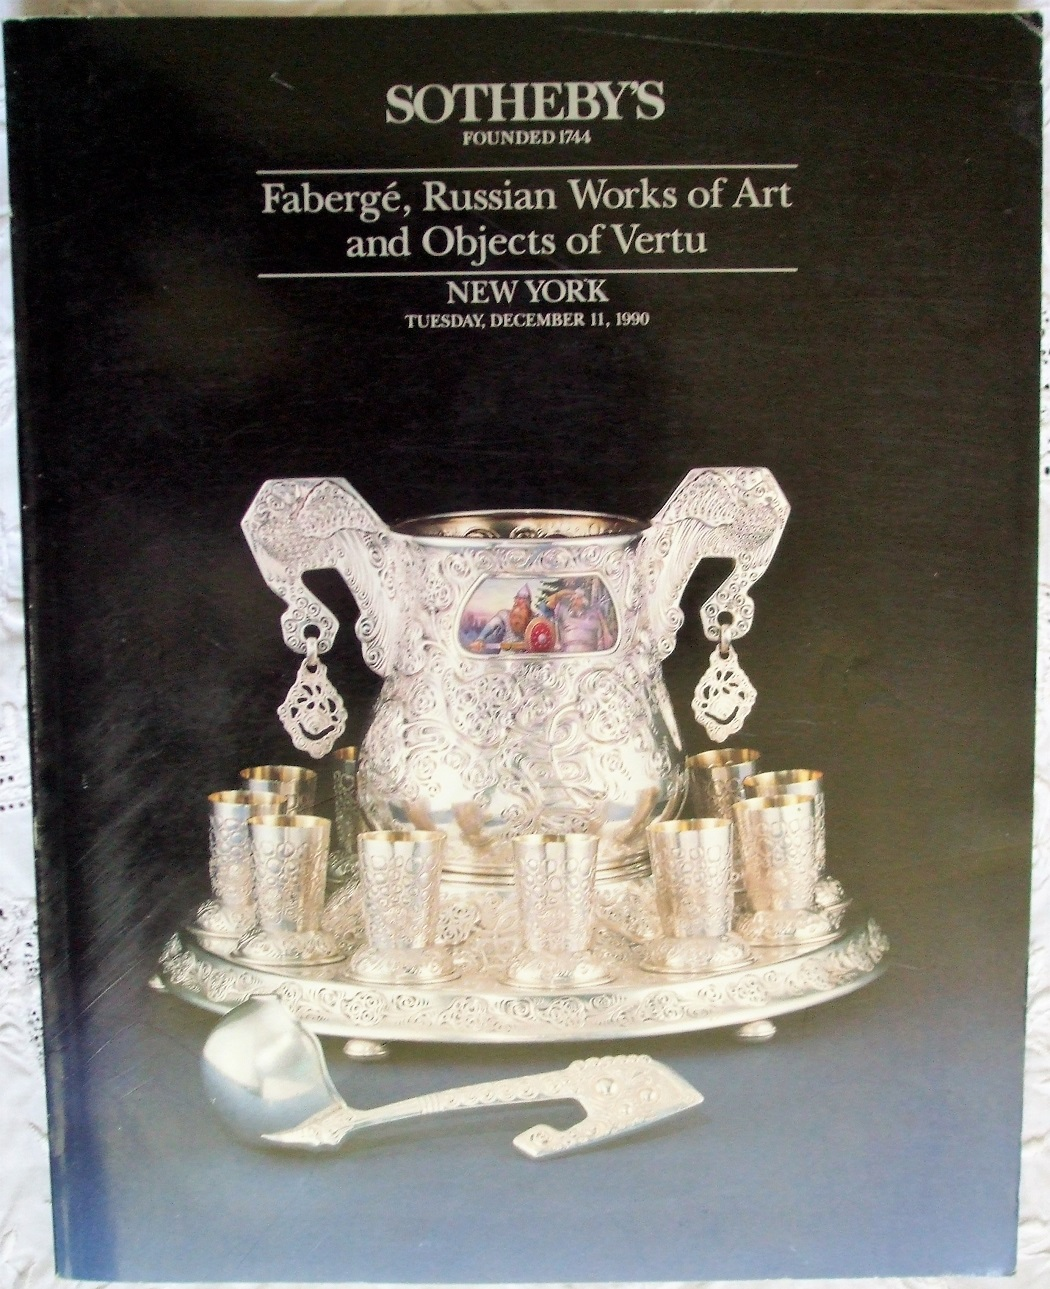 S 6115 OLEG Faberge Russian Works of Art NY 11. 12. 1990